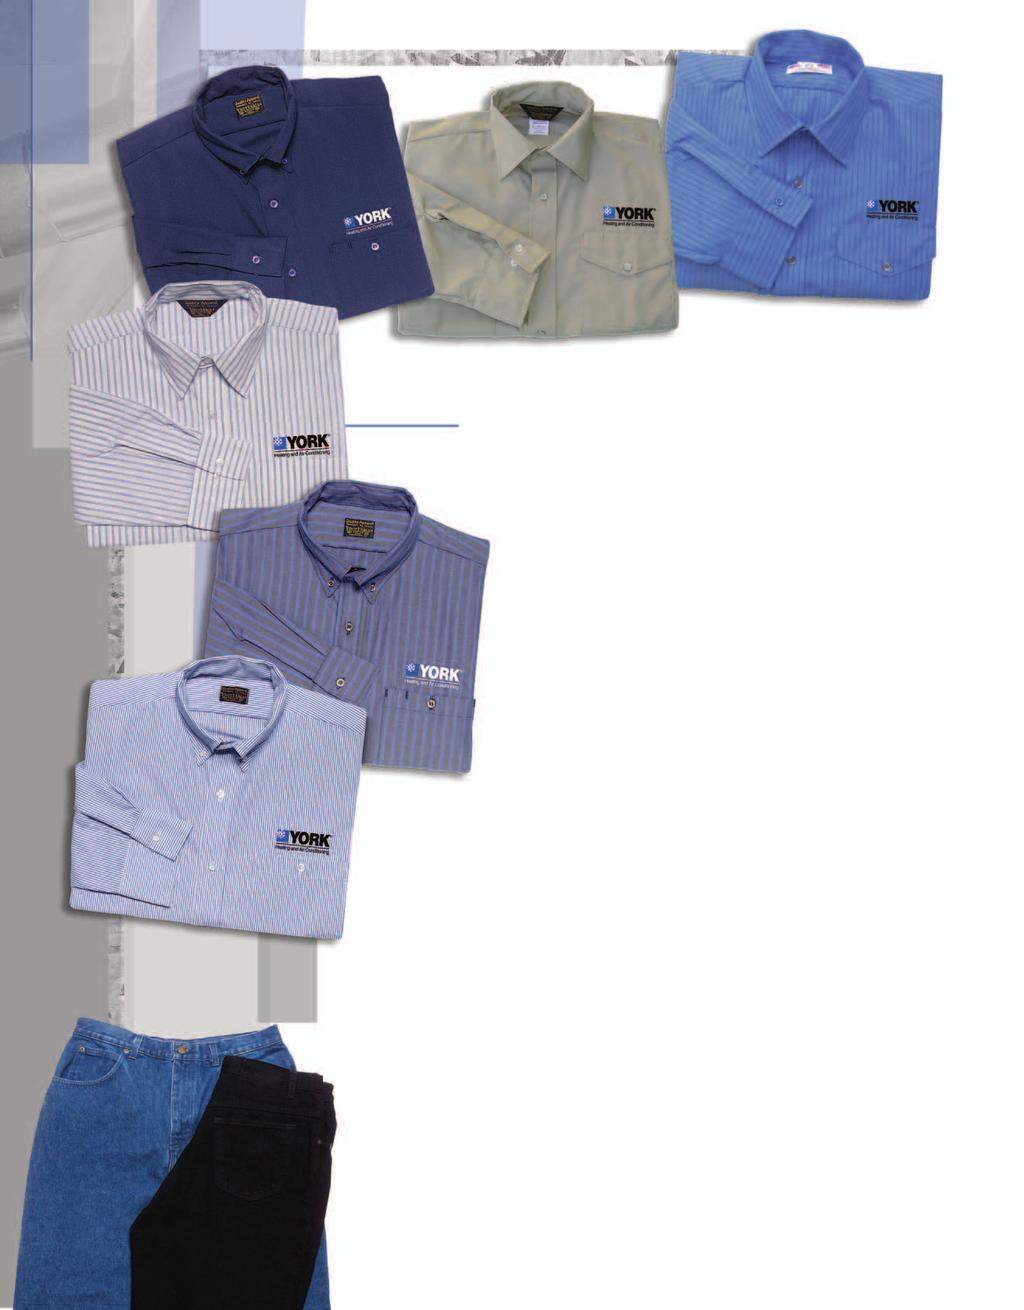 Our shirts offer buttons unless specified to have snap front.